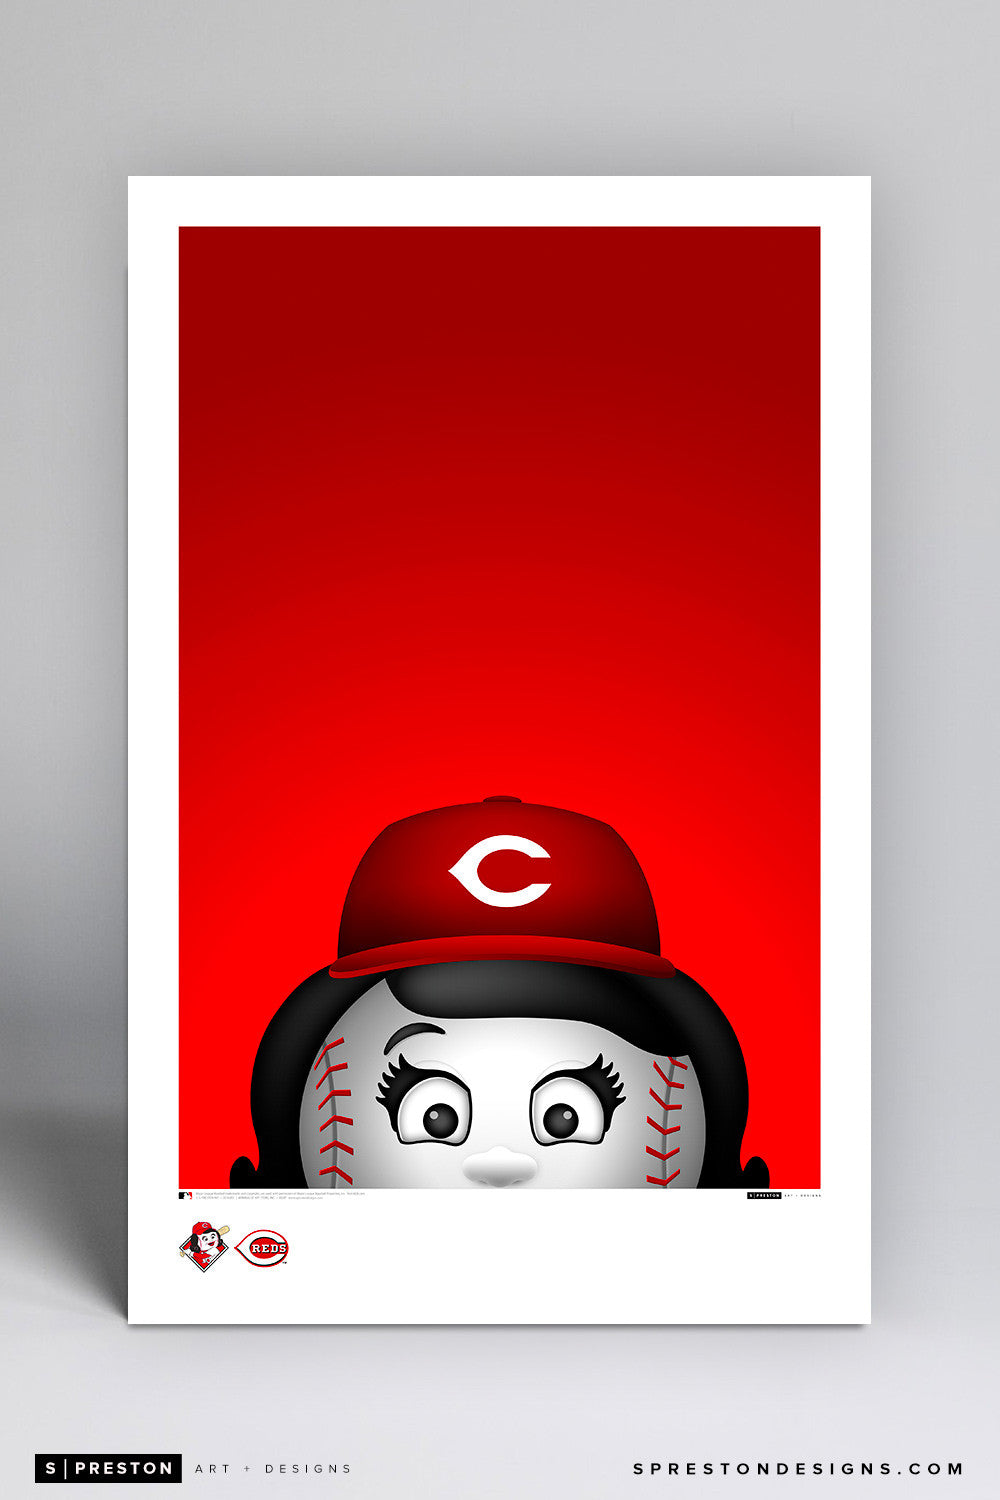 Minimalist Rosie The Red Art Poster Art Poster - Cincinnati Reds - S. Preston Art + Designs